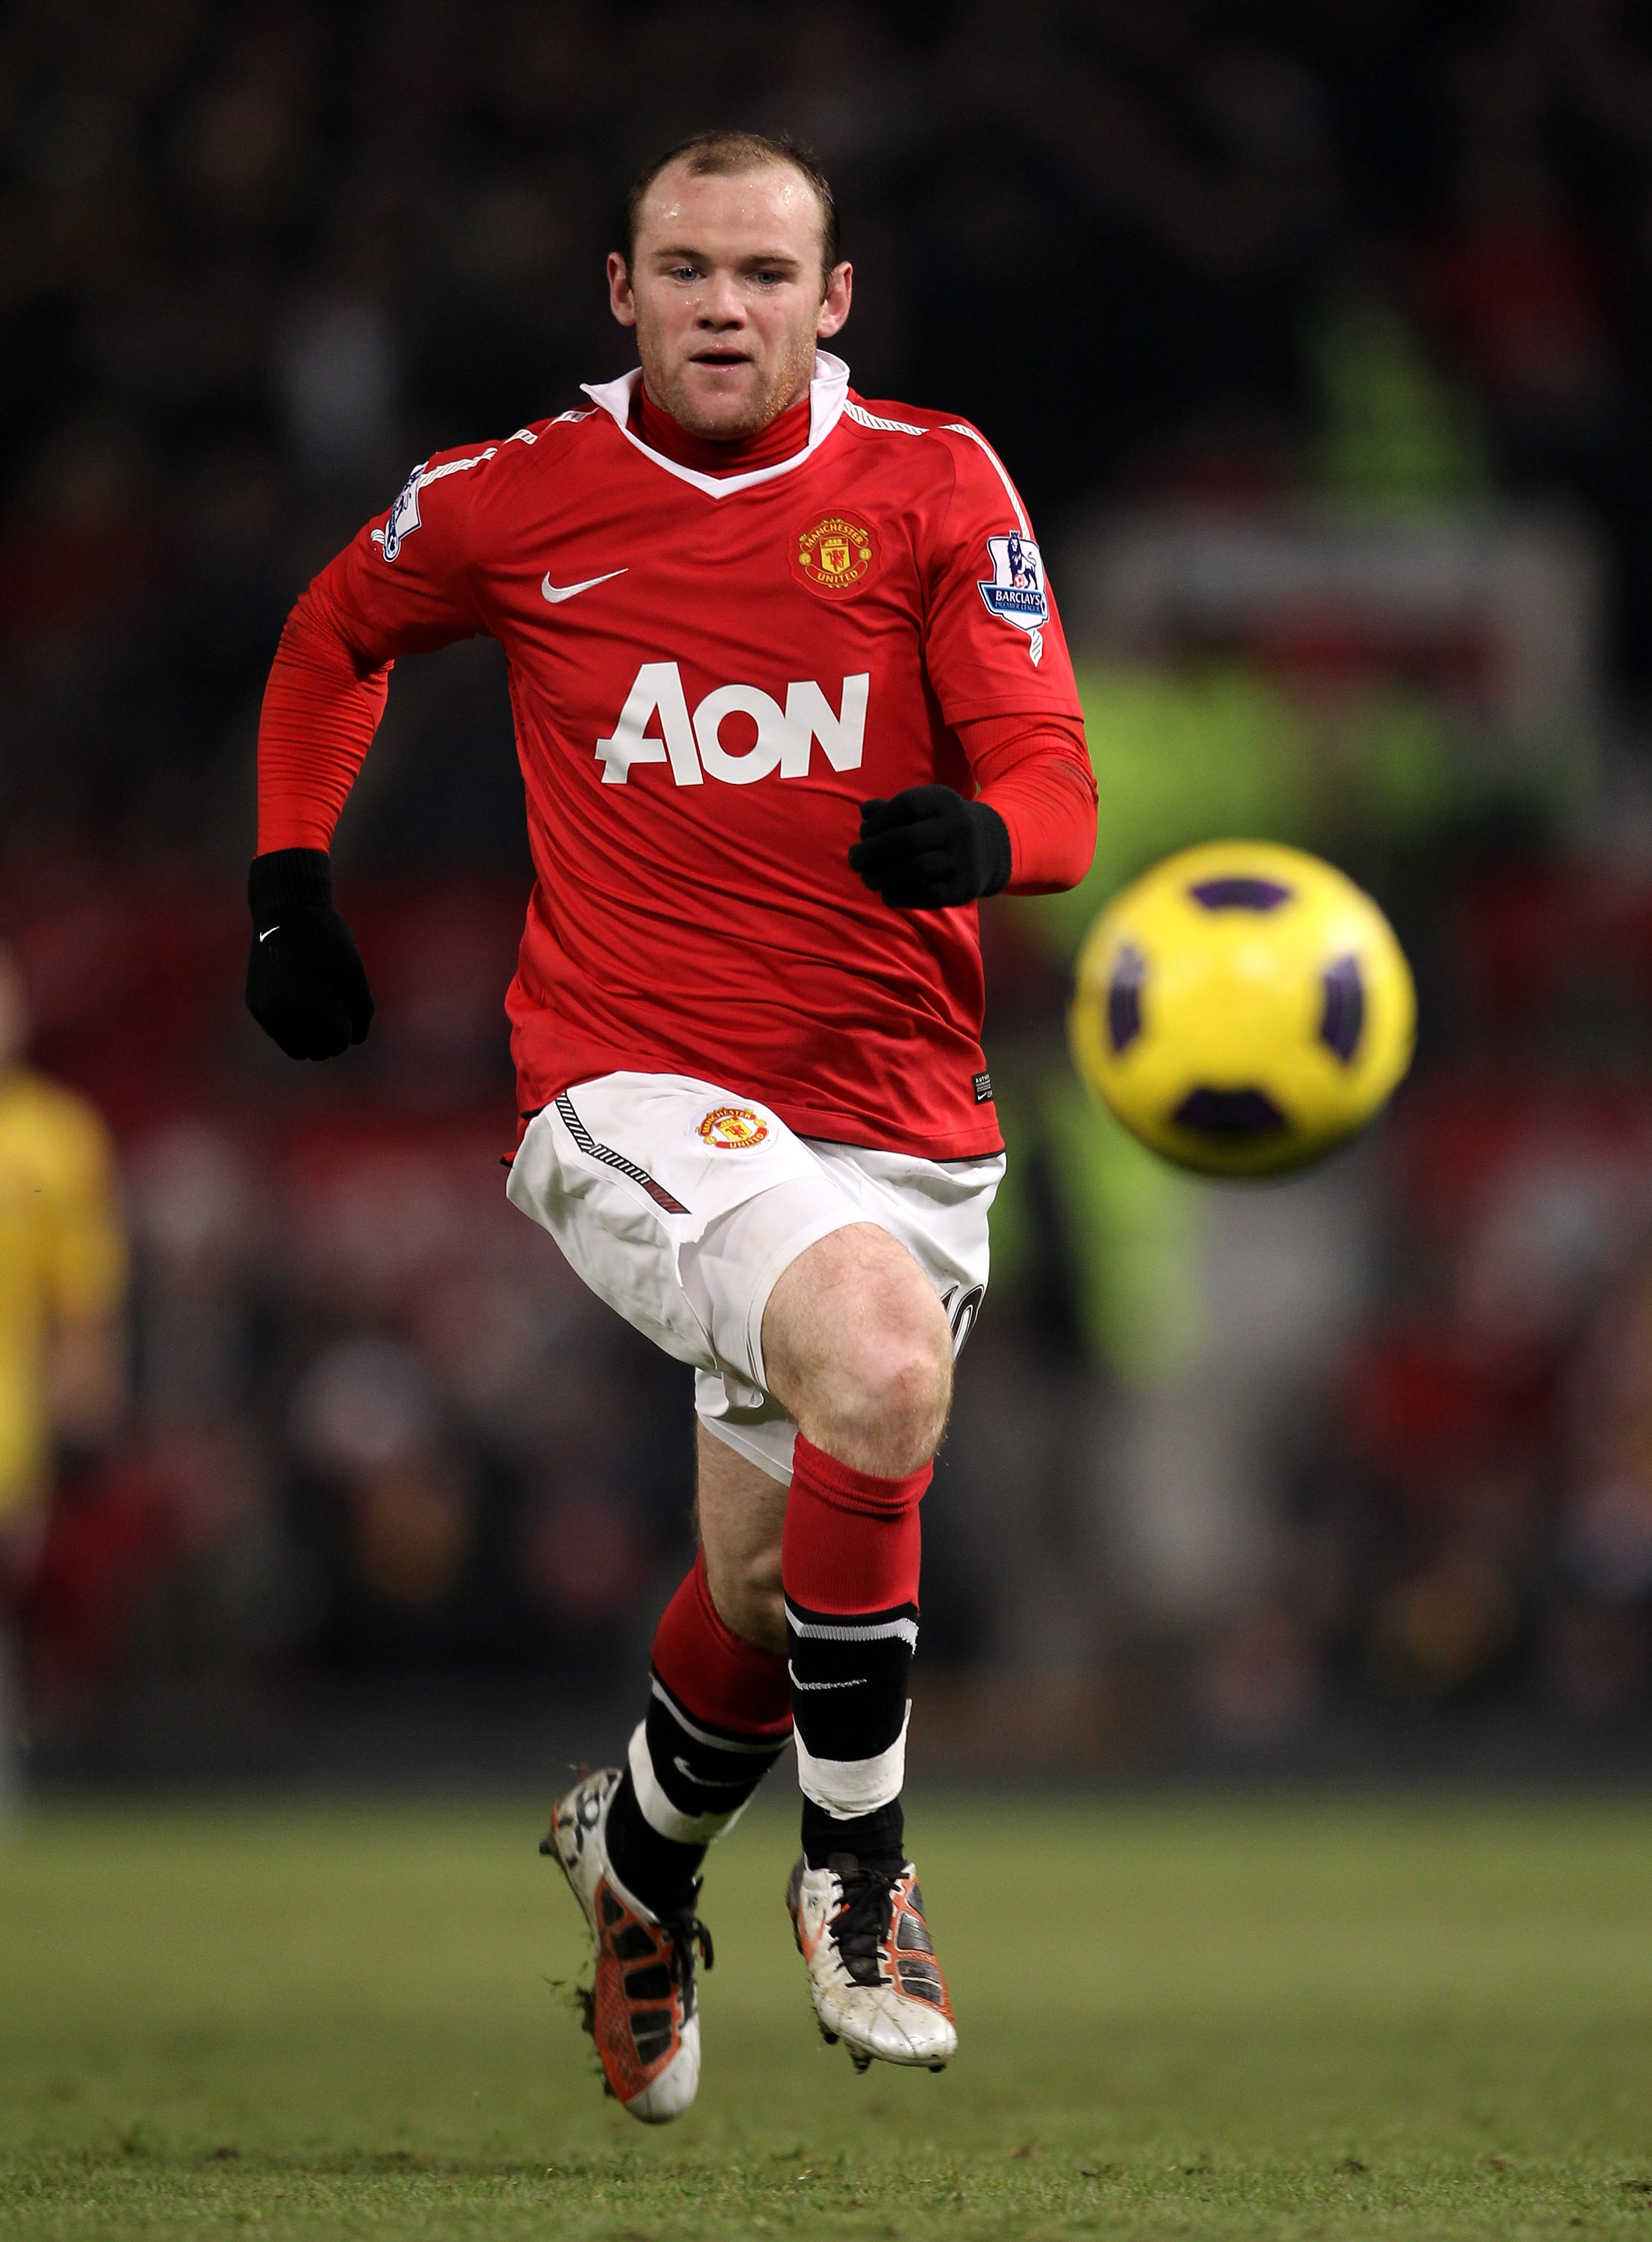 MANCHESTER, ENGLAND - DECEMBER 13:  Wayne Rooney of Manchester United in action during the Barclays Premier League match between Manchester United and Arsenal at Old Trafford on December 13, 2010 in Manchester, England.  (Photo by Alex Livesey/Getty Image